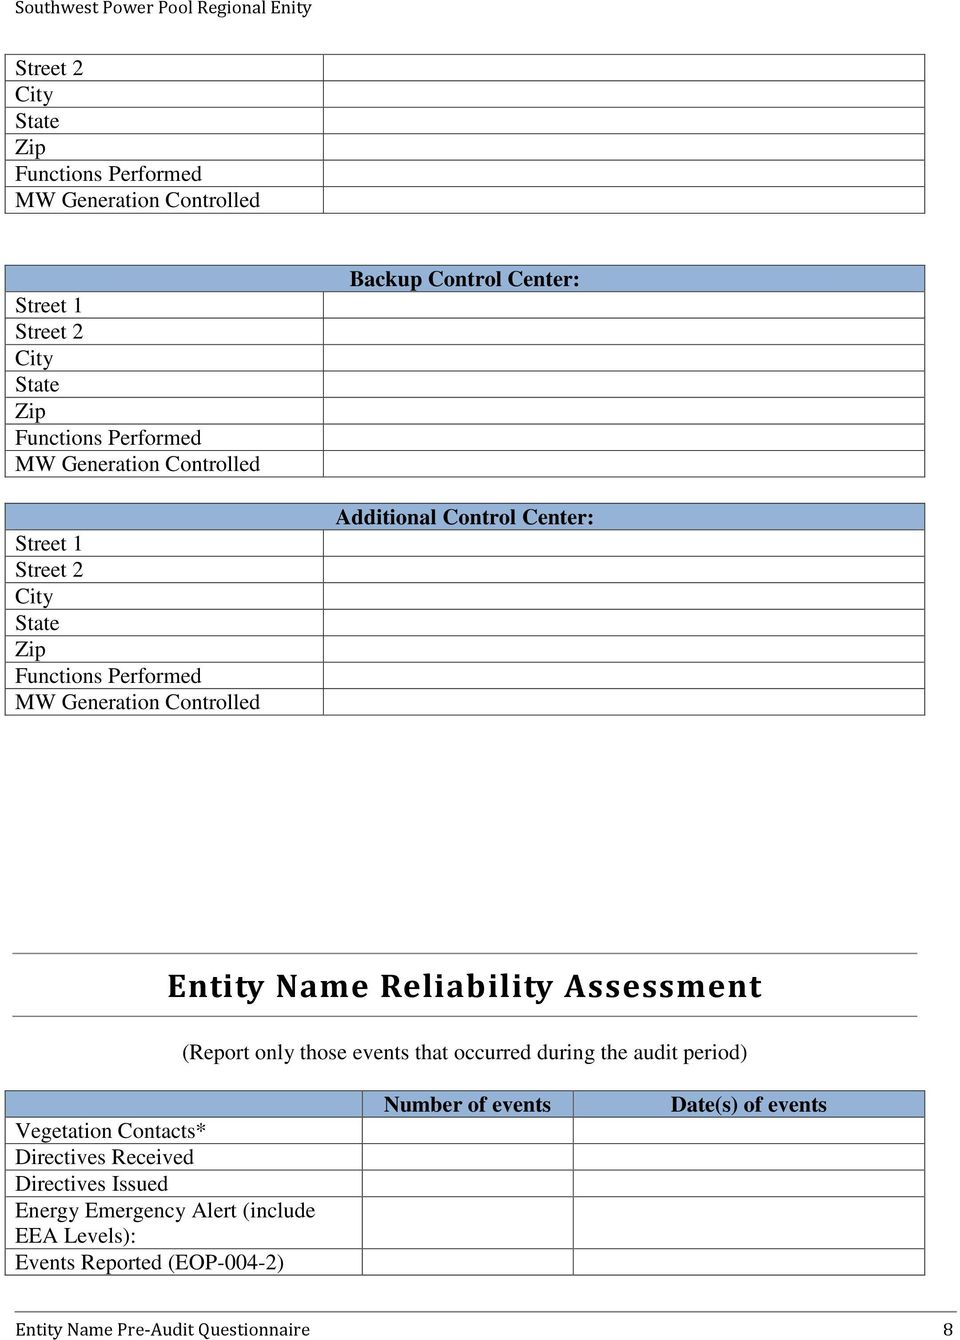 Entity Name Reliability Assessment (Report only those events that occurred during the audit period) Vegetation Contacts* Directives Received